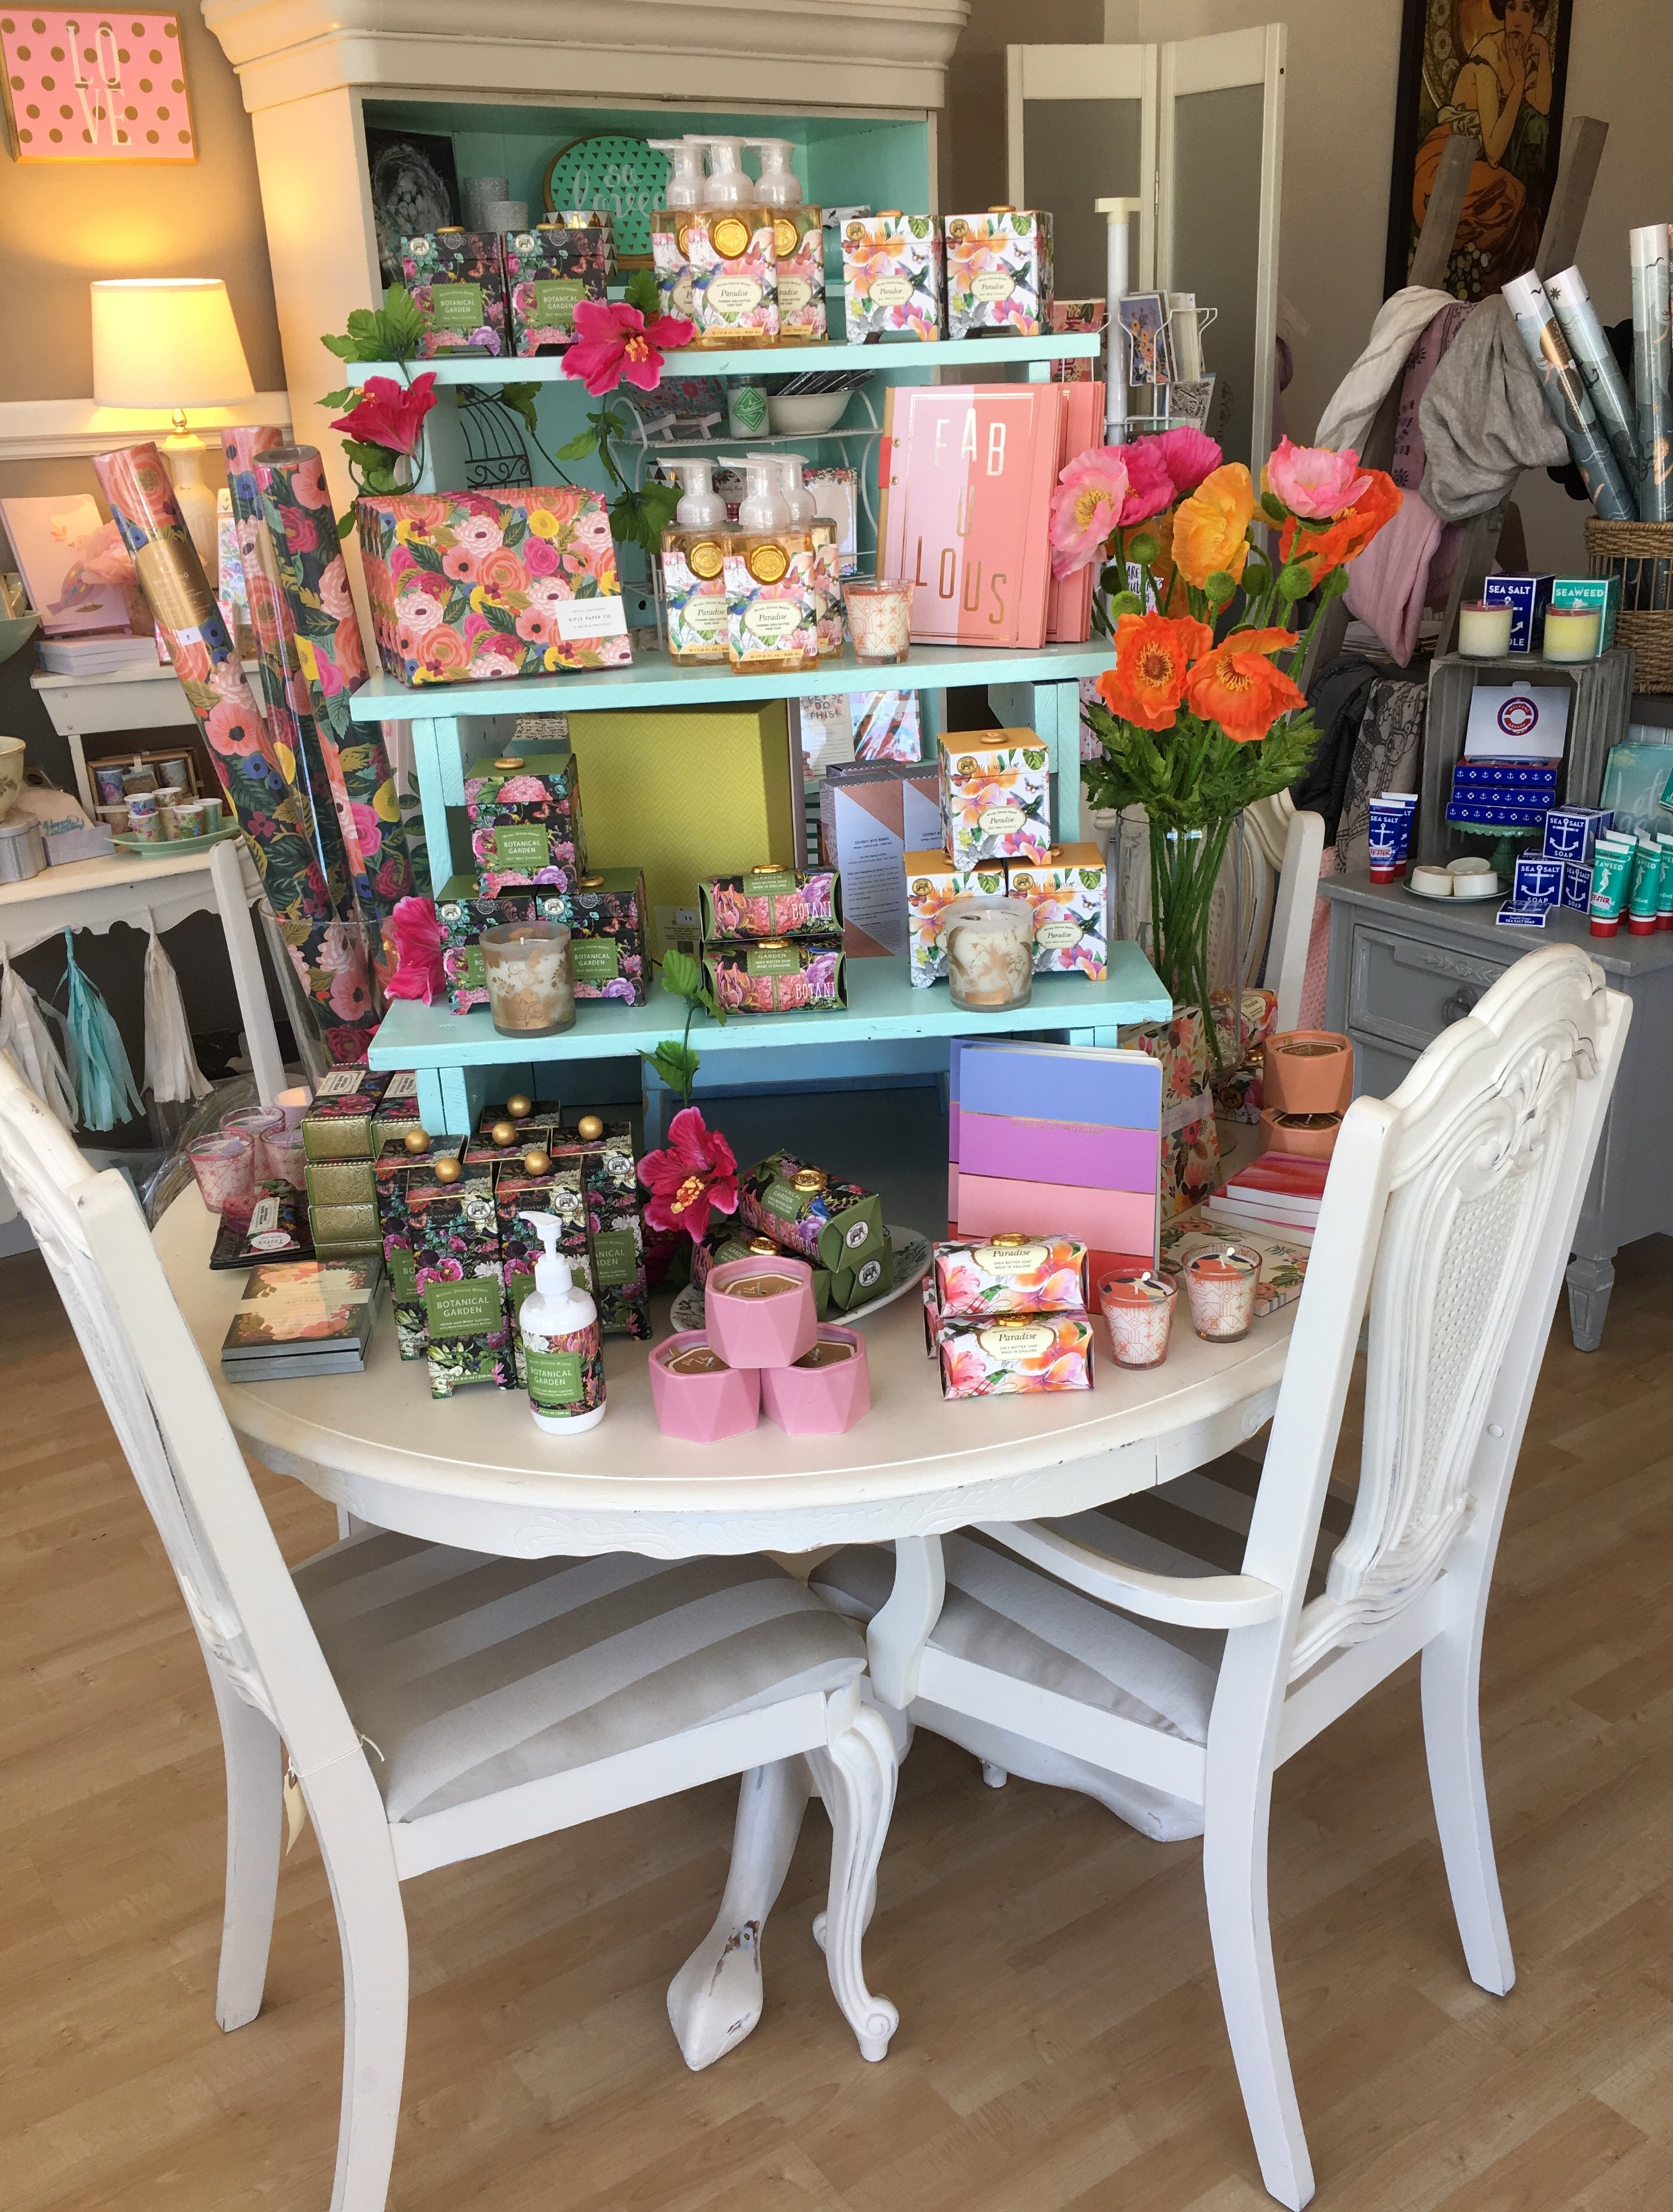 Stationary, journals and notepads combined with the beautiful lotions, soaps and candles will make any mom smile!